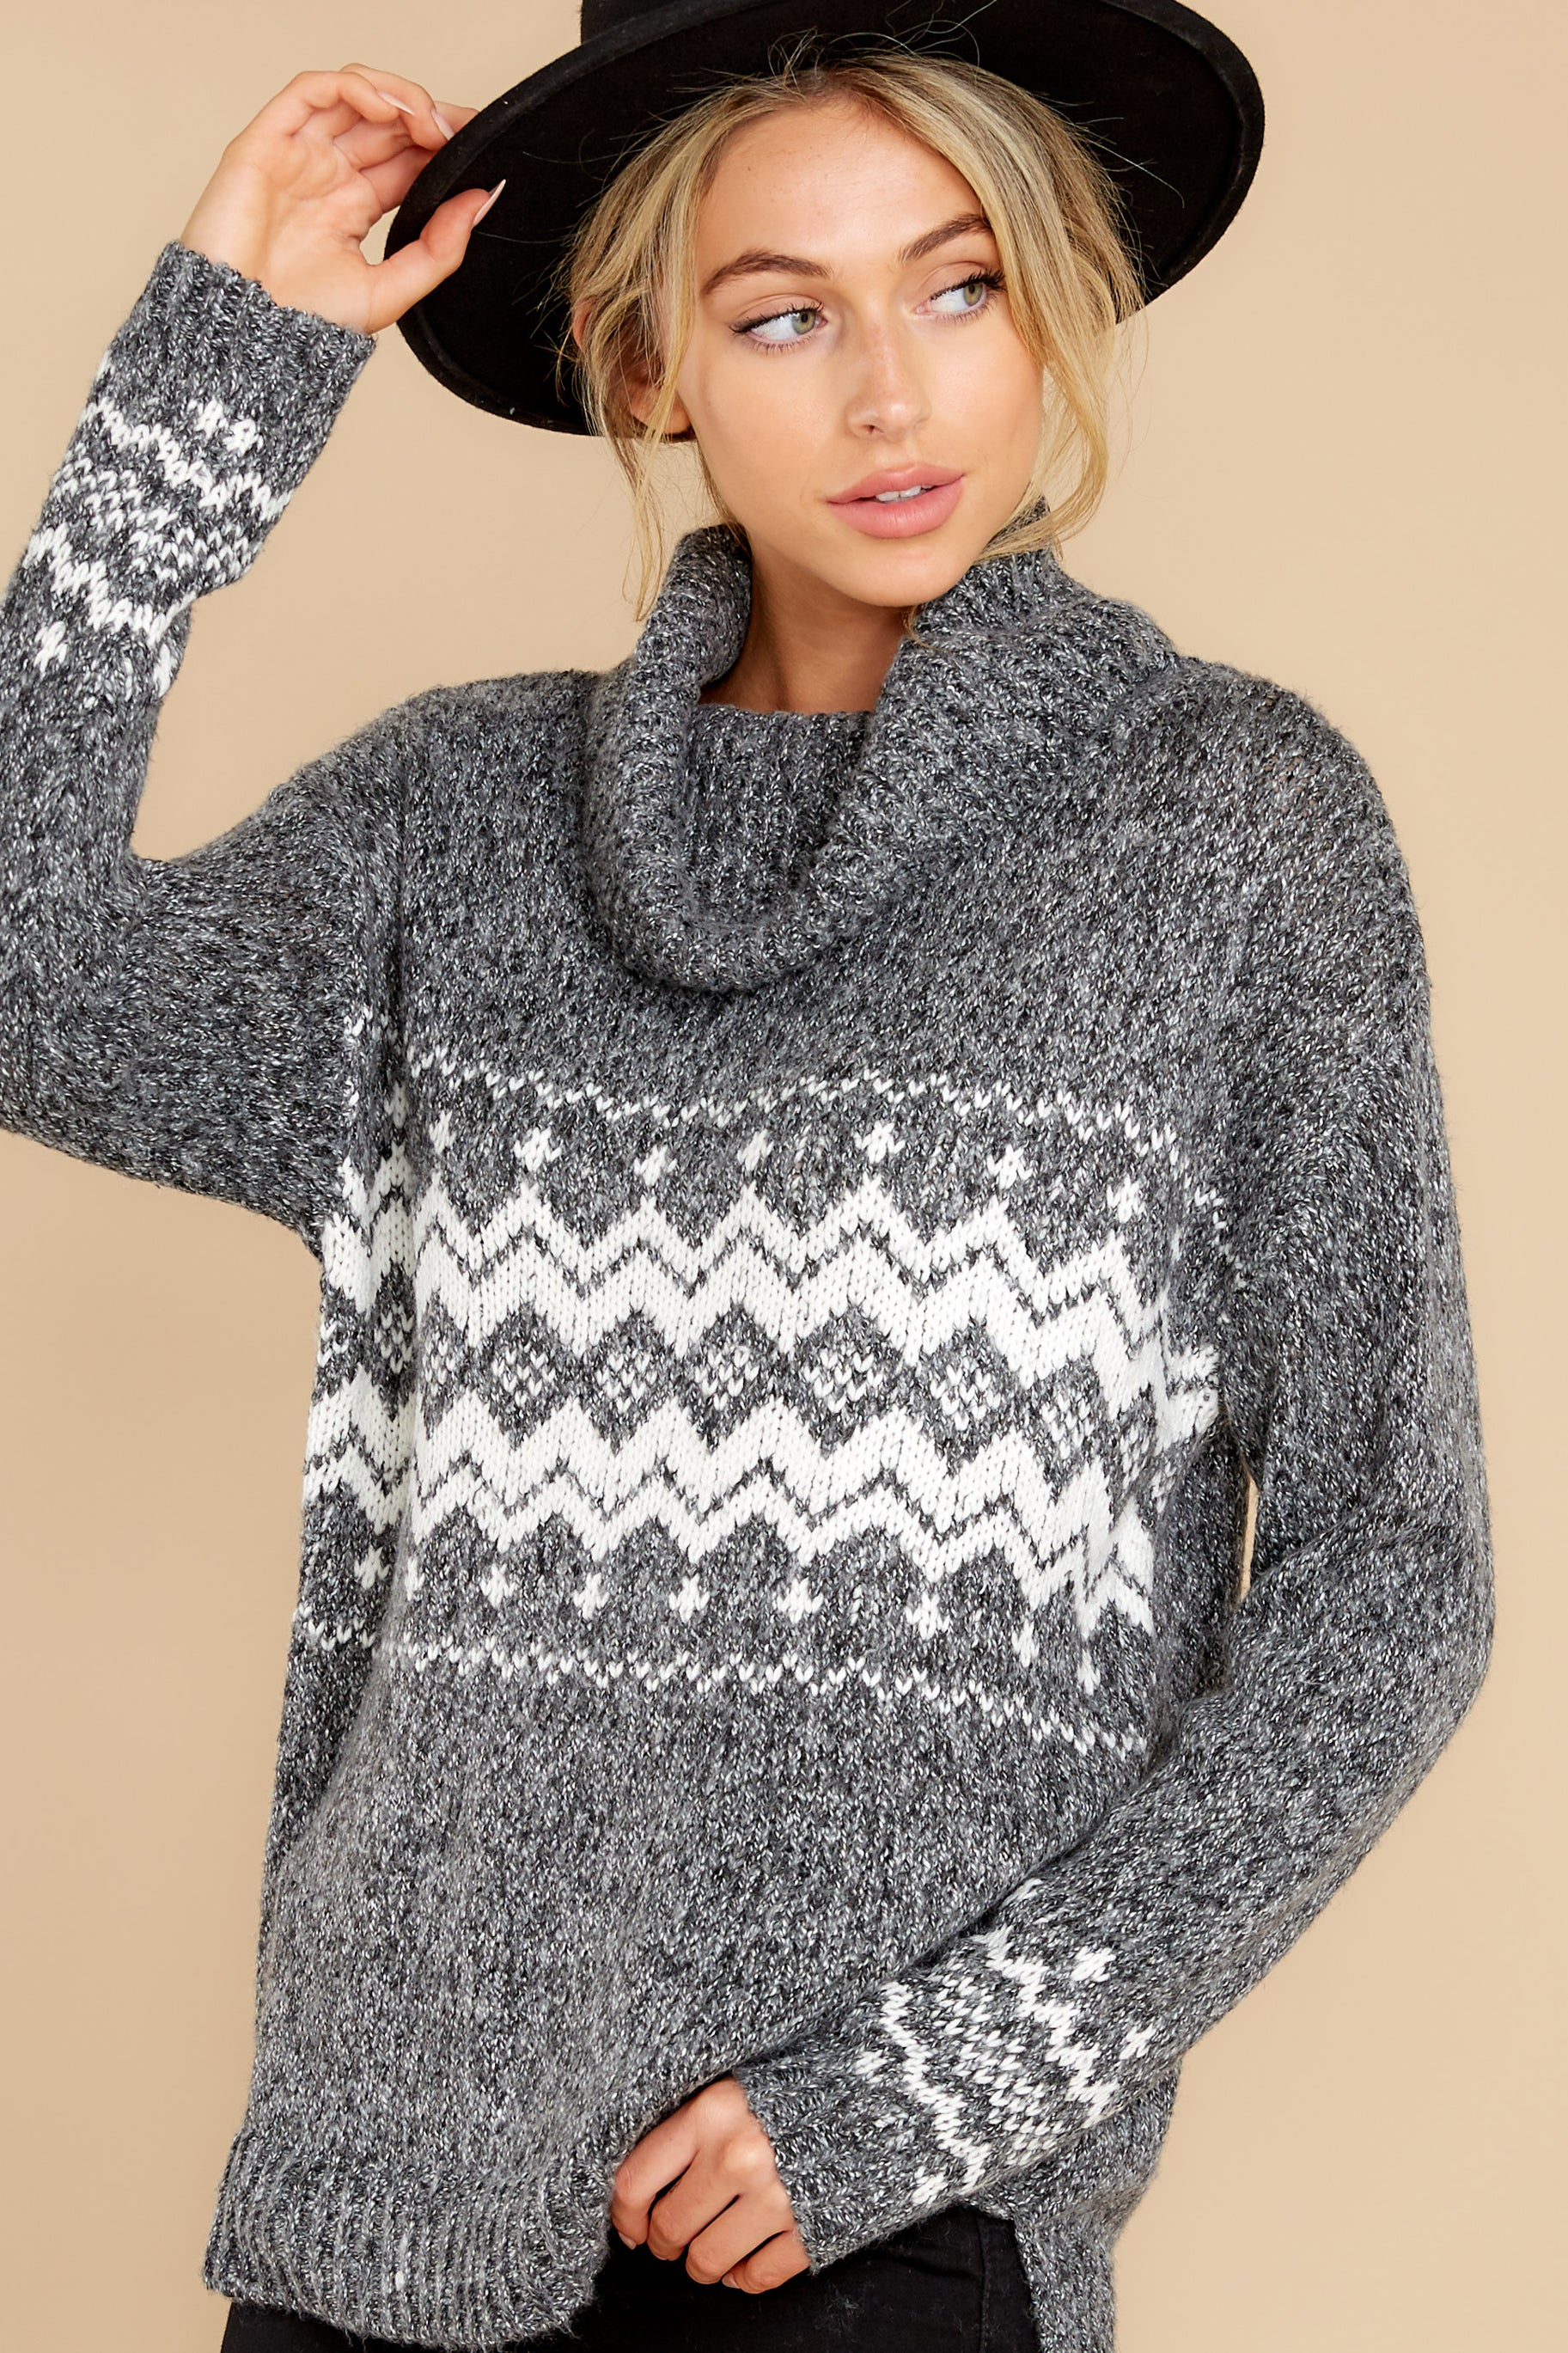 Vintage Sweaters, Retro Sweaters & Cardigan Ladies Gonna Single Out Charcoal Sweater Grey $42.00 AT vintagedancer.com